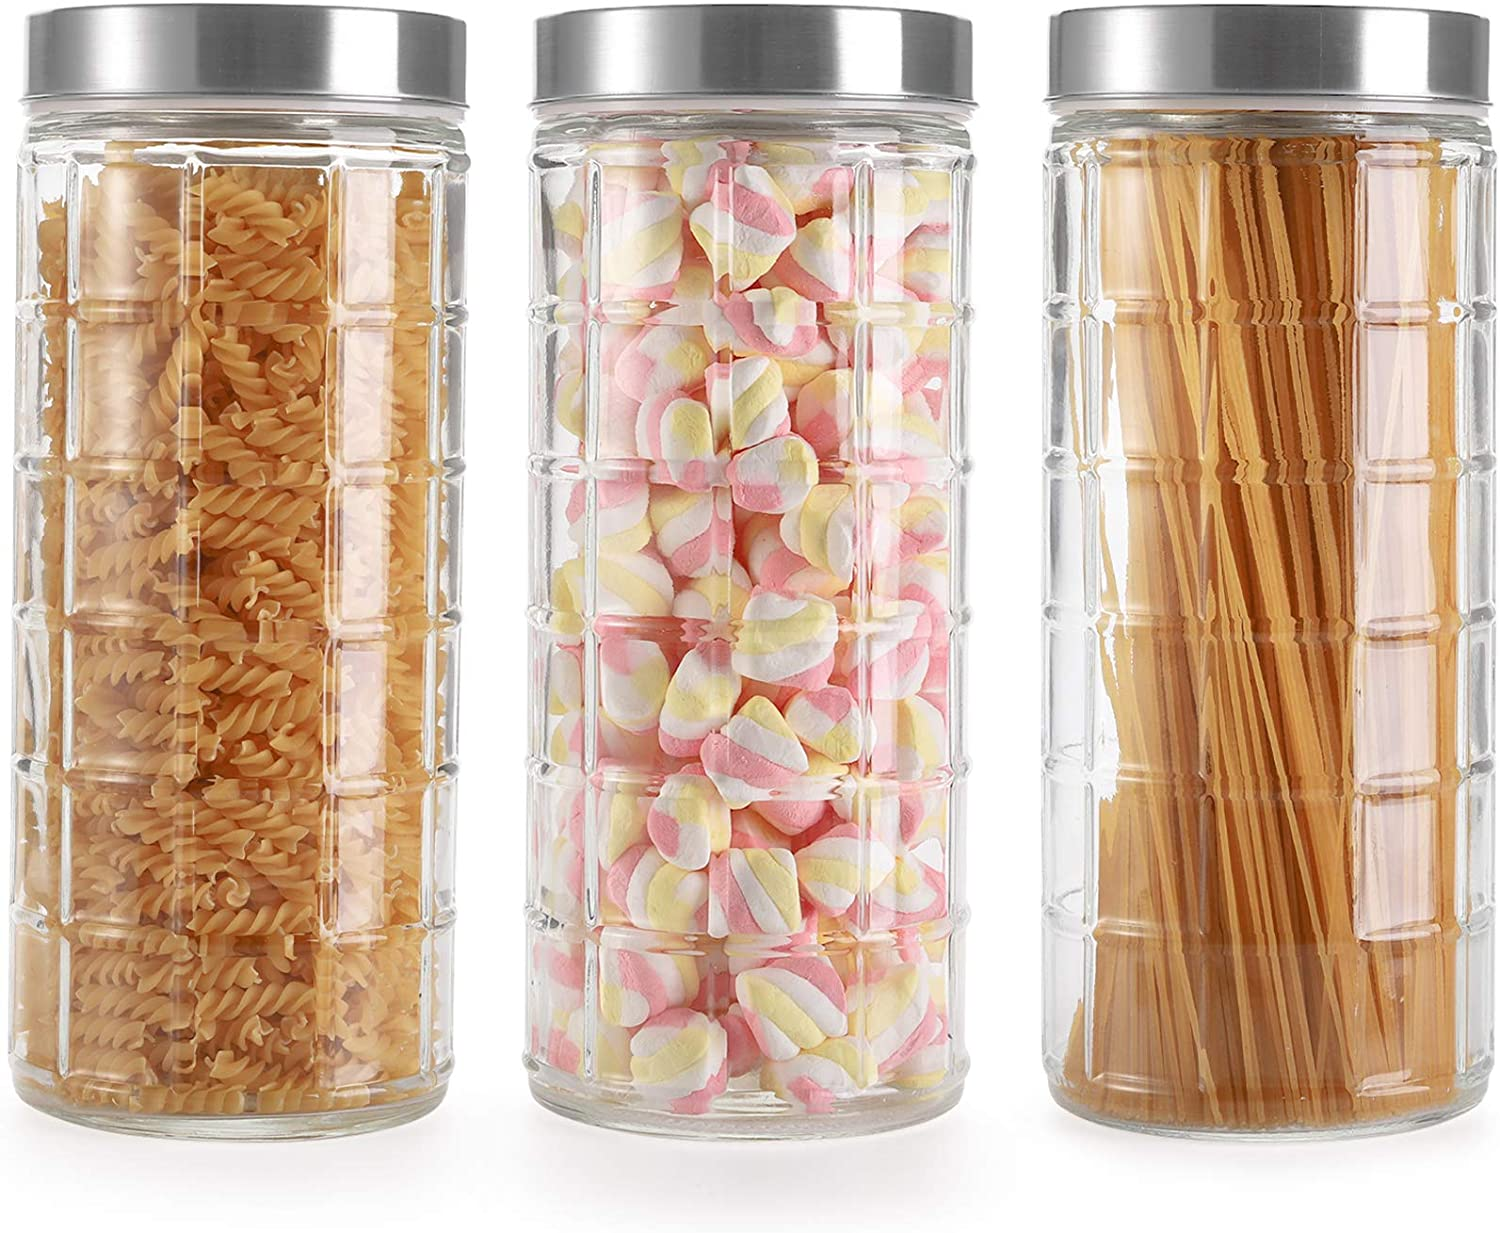 Hedume 3 Pack Large Glass Container With Airtight Lid, 72 Oz Glass Jar with Metal Lids, Dry Food Storage Pasta Container Kitchen Canister, Glass Canister Sets, Large Spaghetti Jars